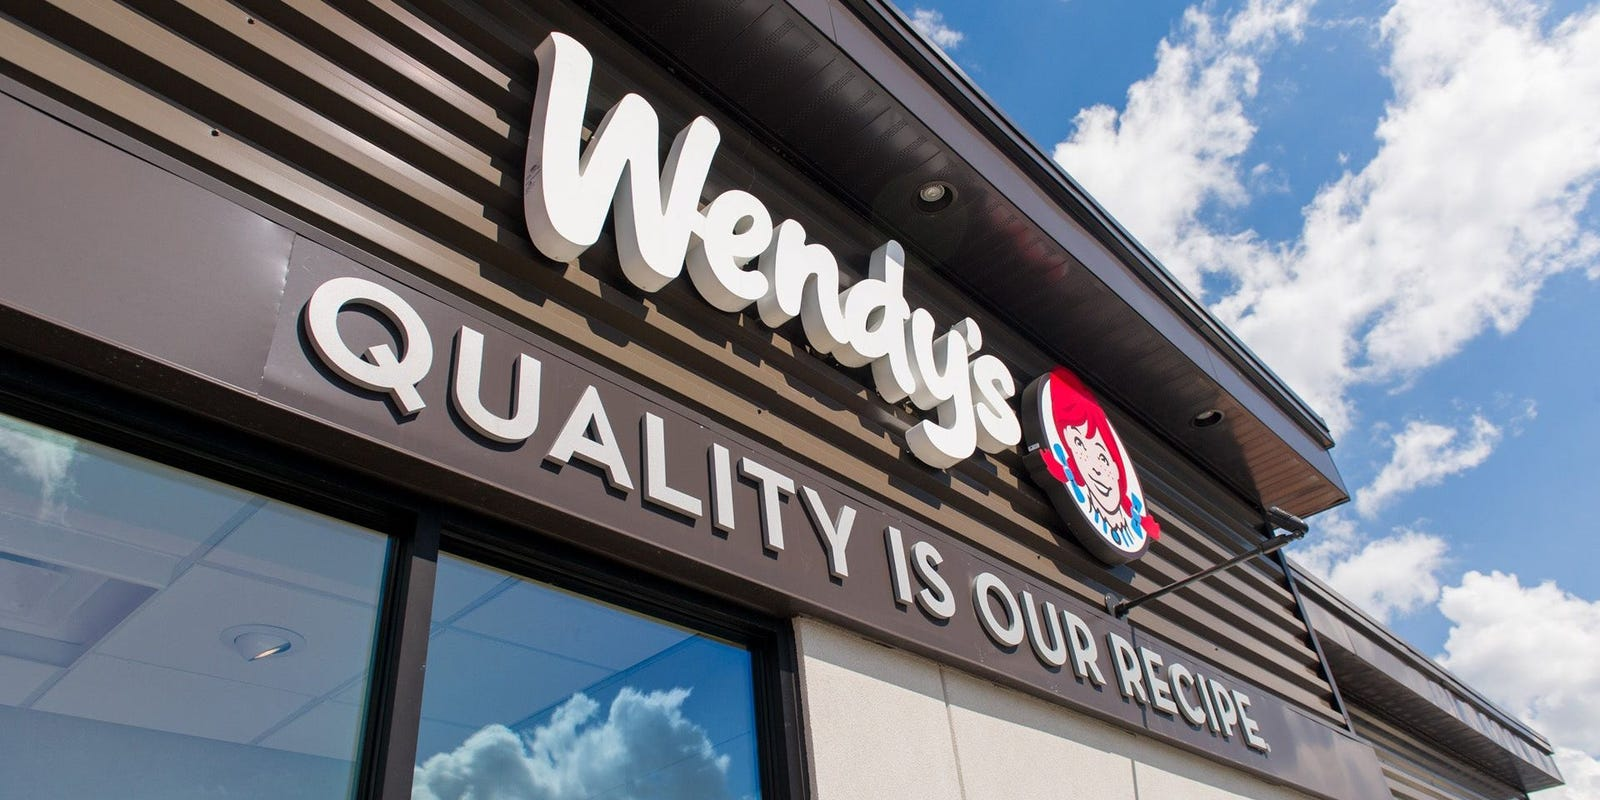 Free nuggets! Wendy's offering Friday freebie as part of its coronavirus response